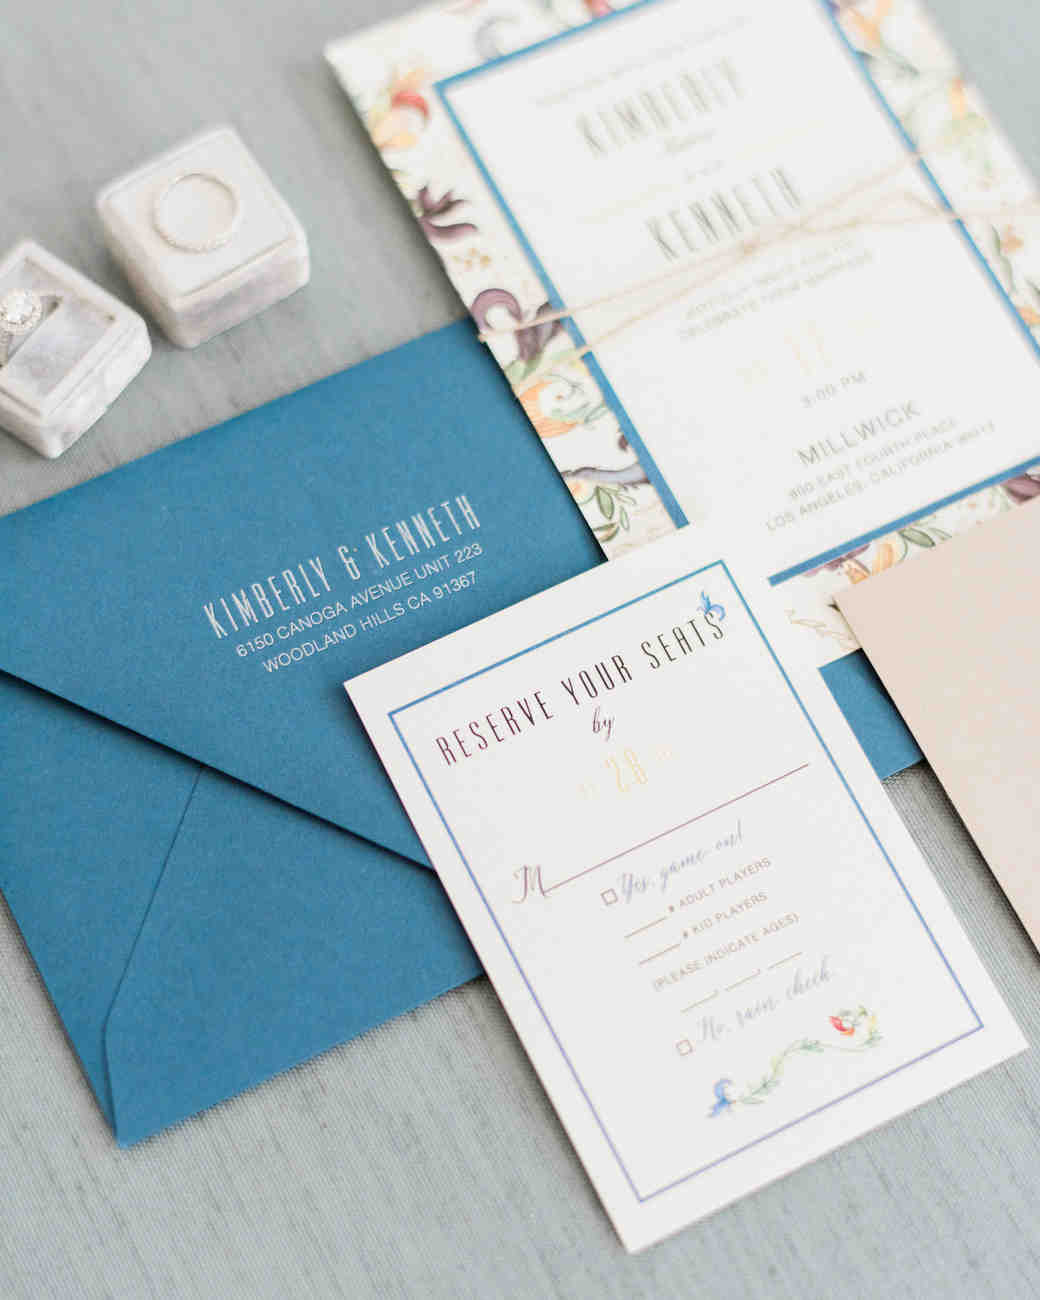 29 Ideas for Unique Wedding Invitations | Martha Stewart Weddings